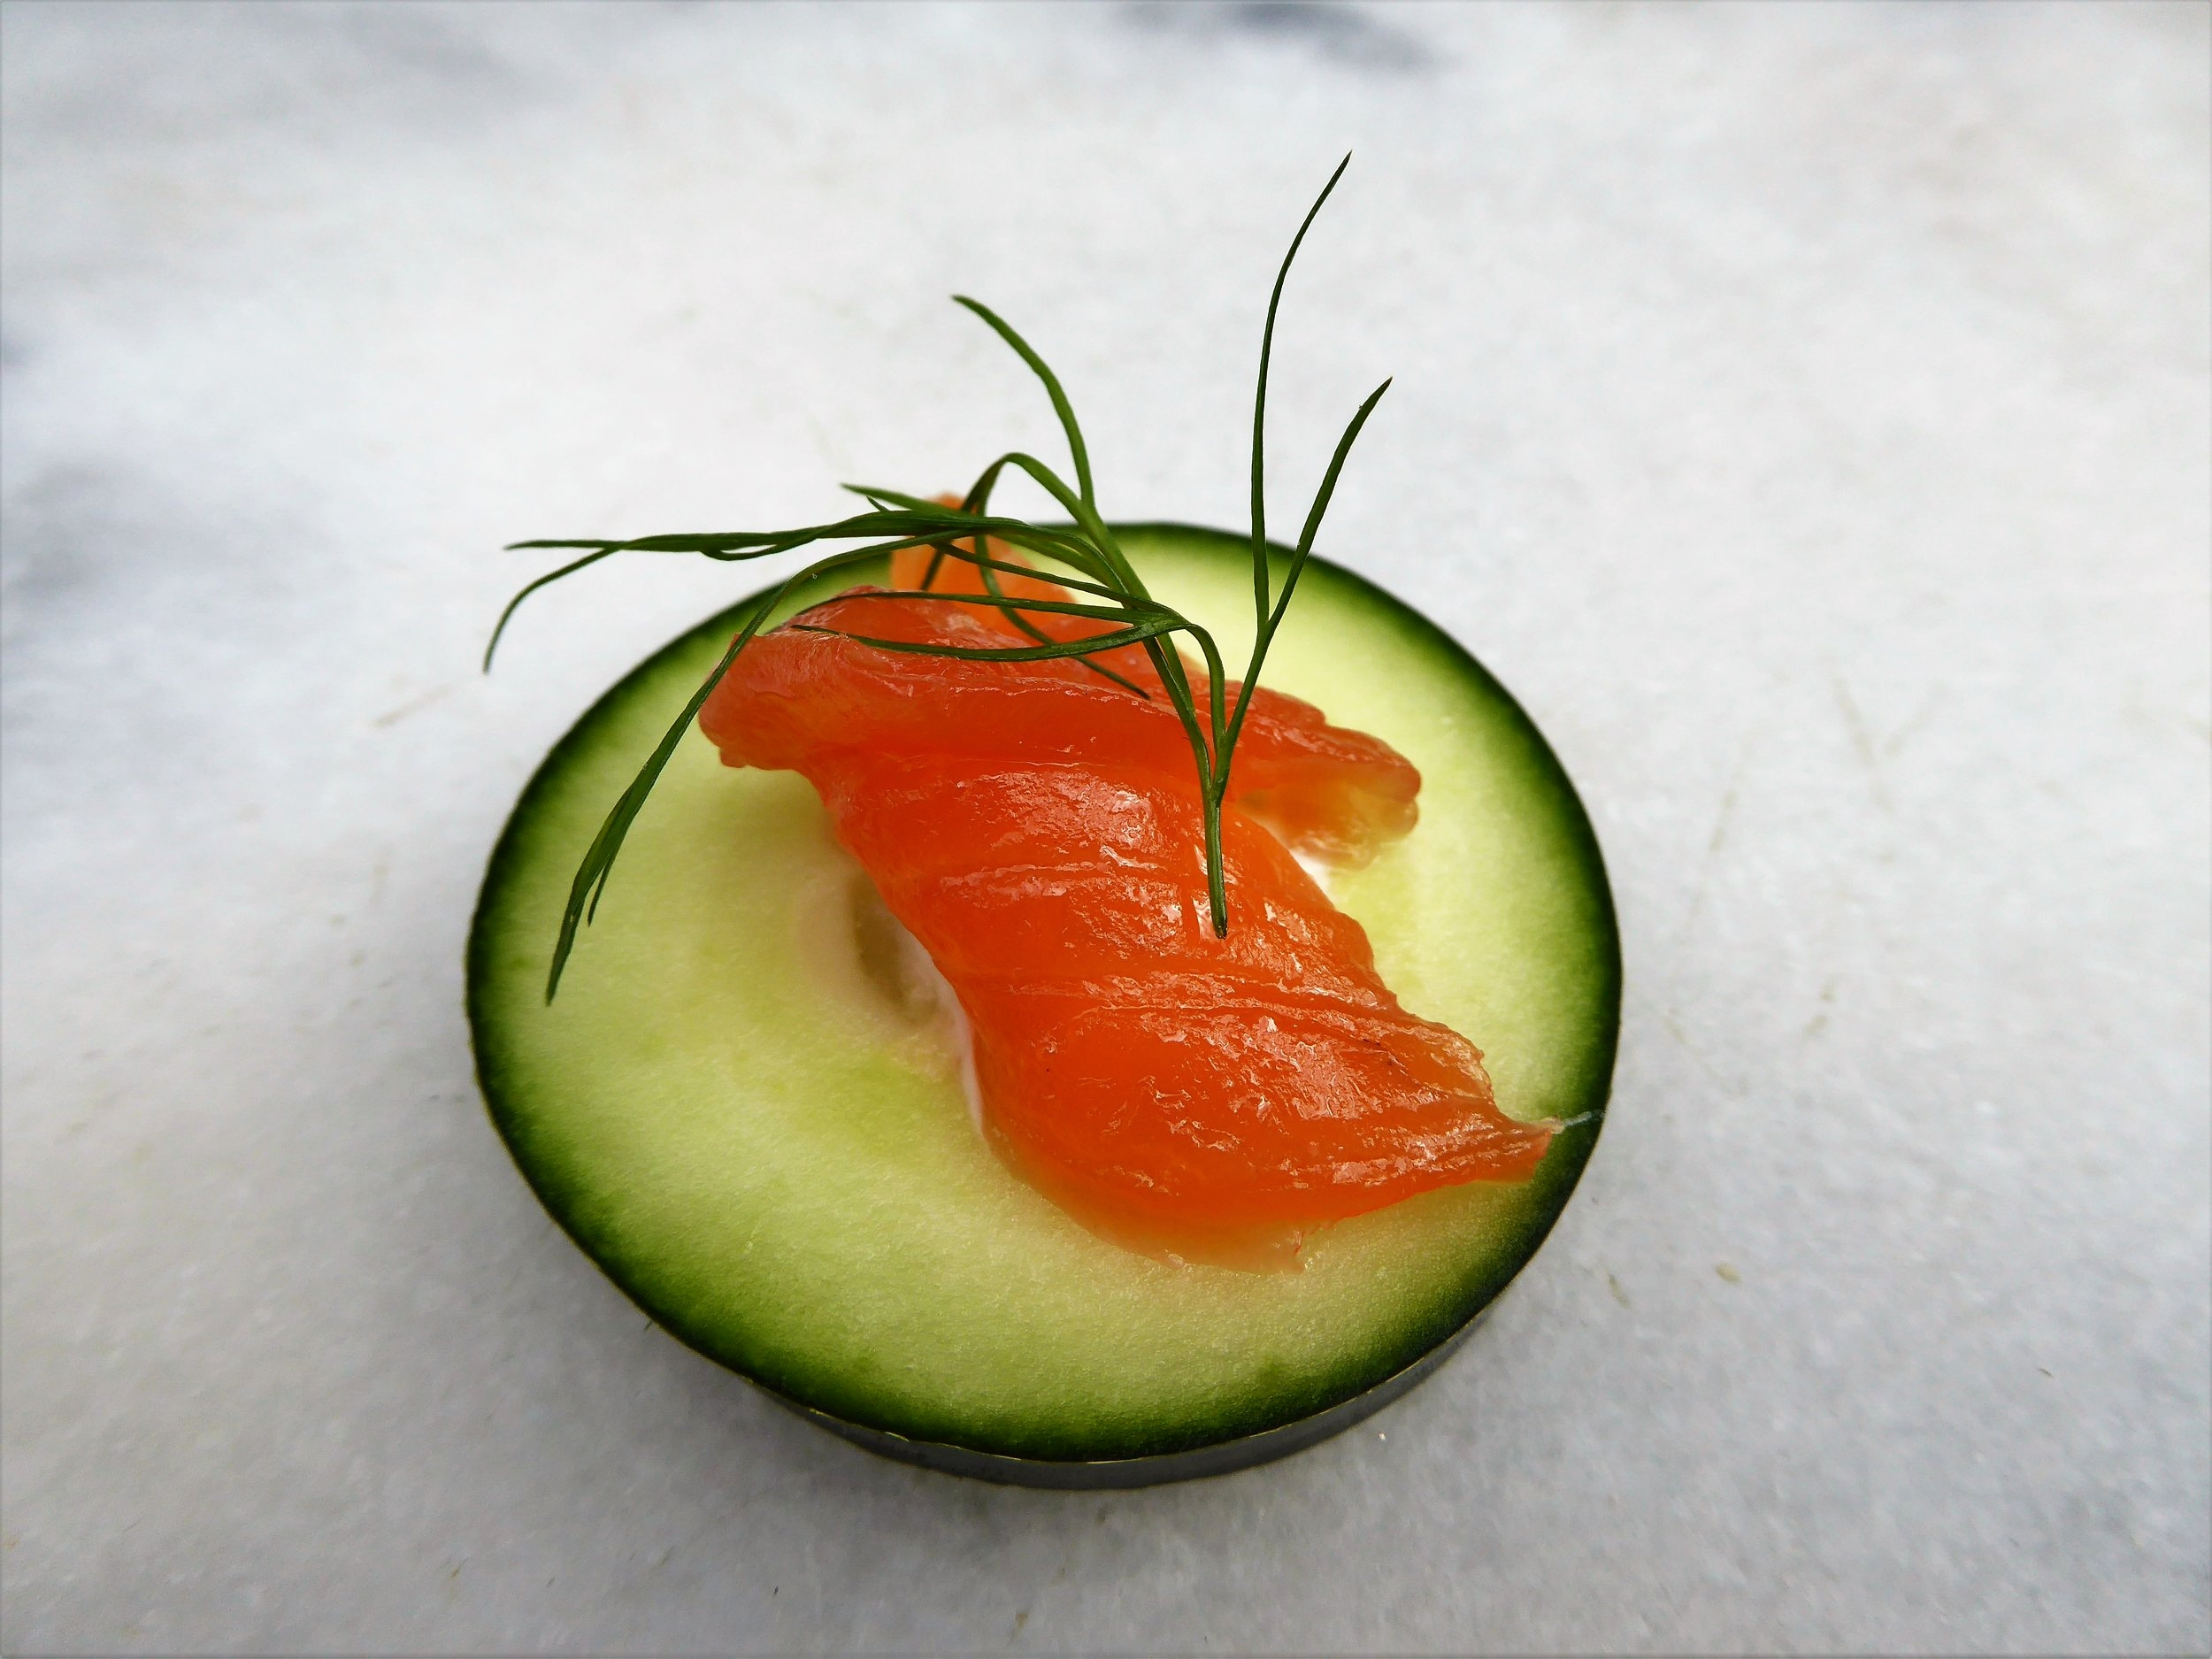 Refreshing cucumber is a great pairing for gravlax